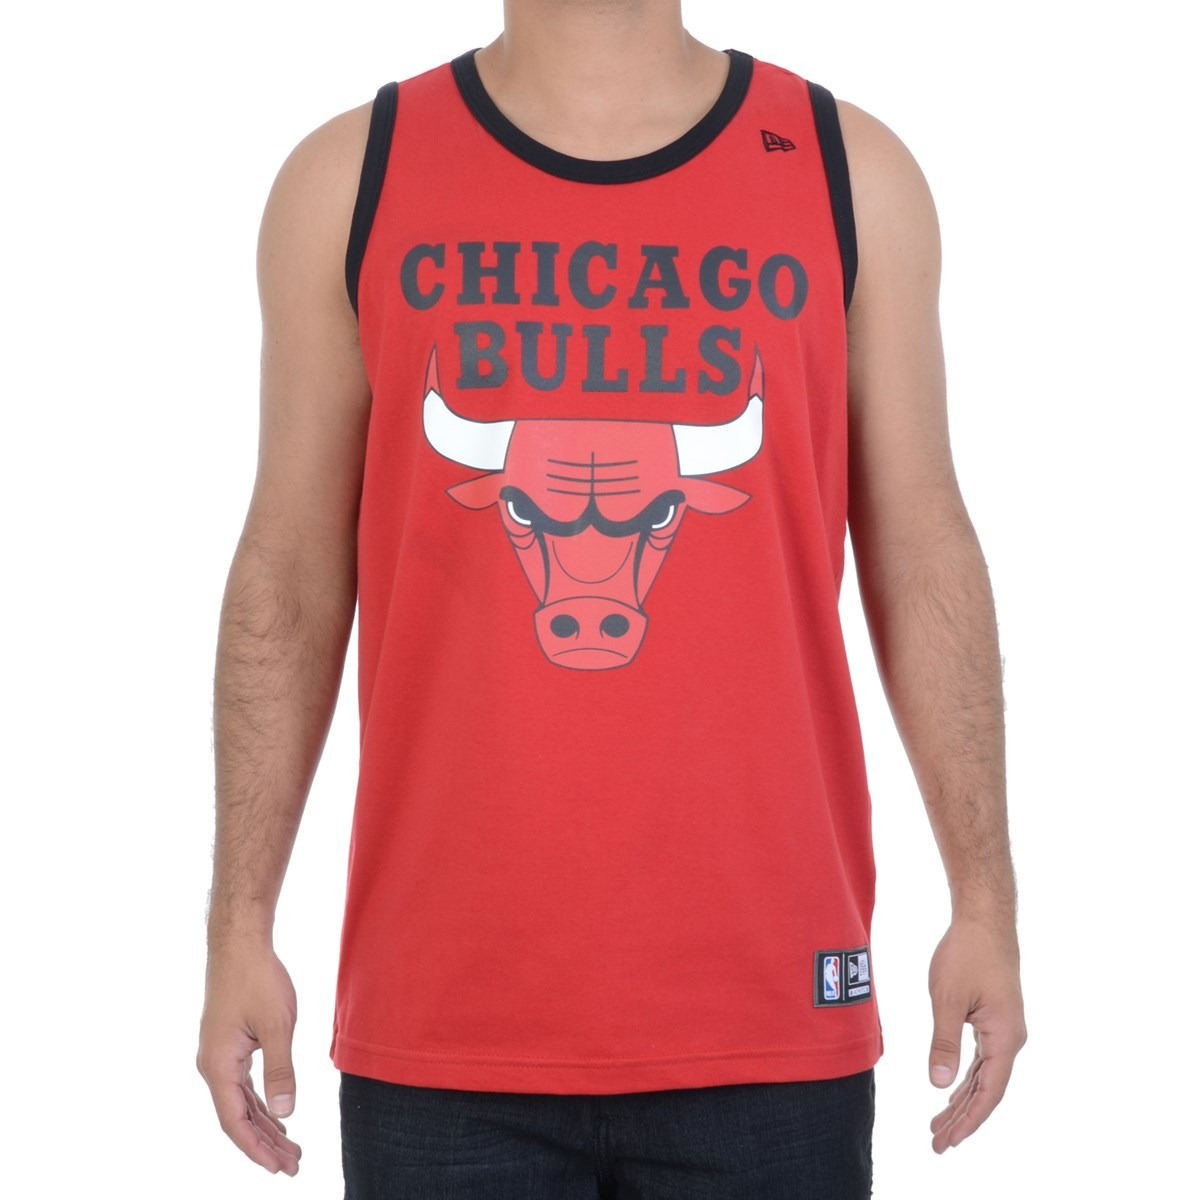 be3a1594f camiseta masculina new era regata nba chicago bulls vermelha. Carregando  zoom.